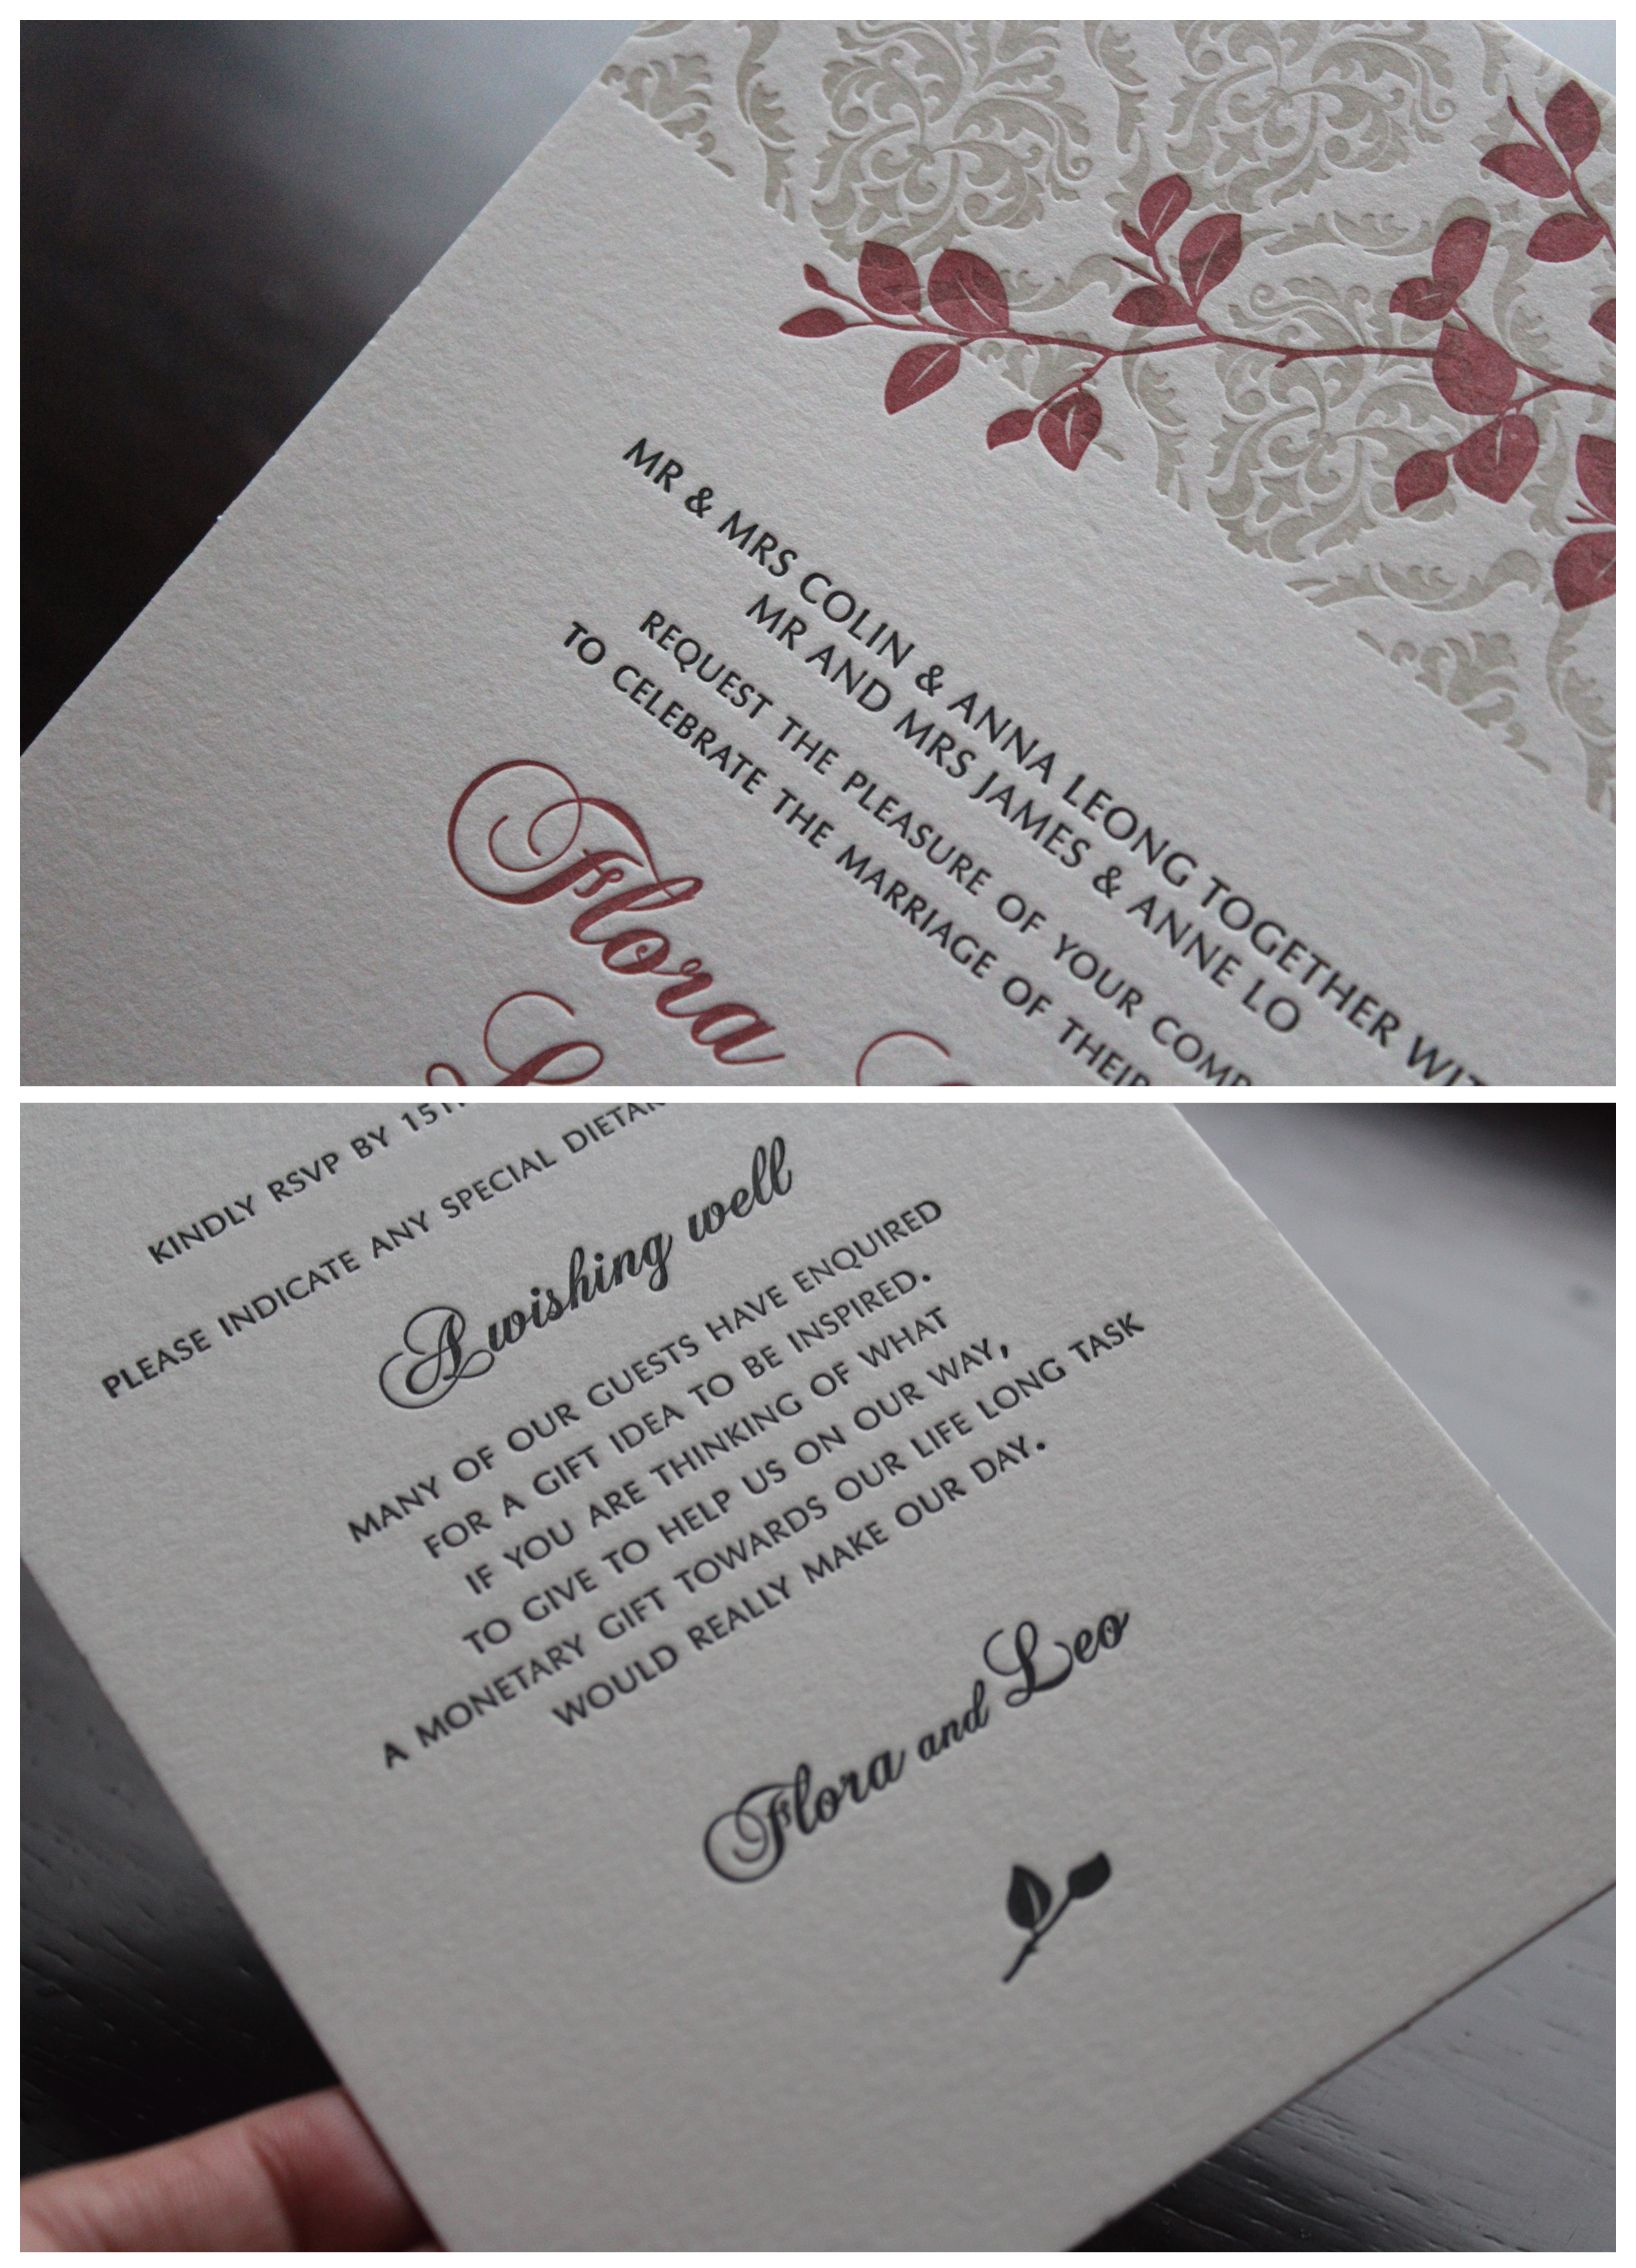 Wedding Invitations. Letterpress printed on 100% Cotton Stock. By The Hunter Press